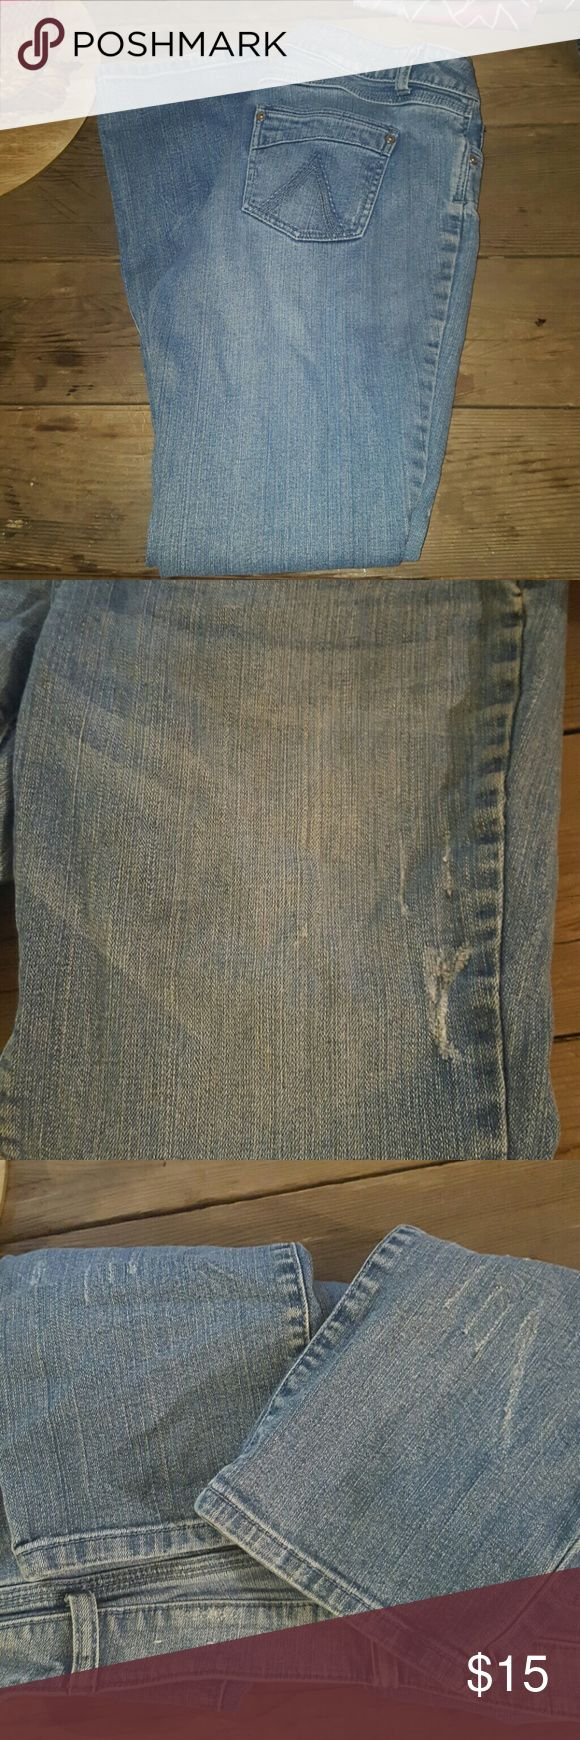 New condition Delia's straight cut jeans Delia's straight cut jeans New condition Some factory distress Size says 11/12 but fits more like 10s Delia's  Jeans Straight Leg